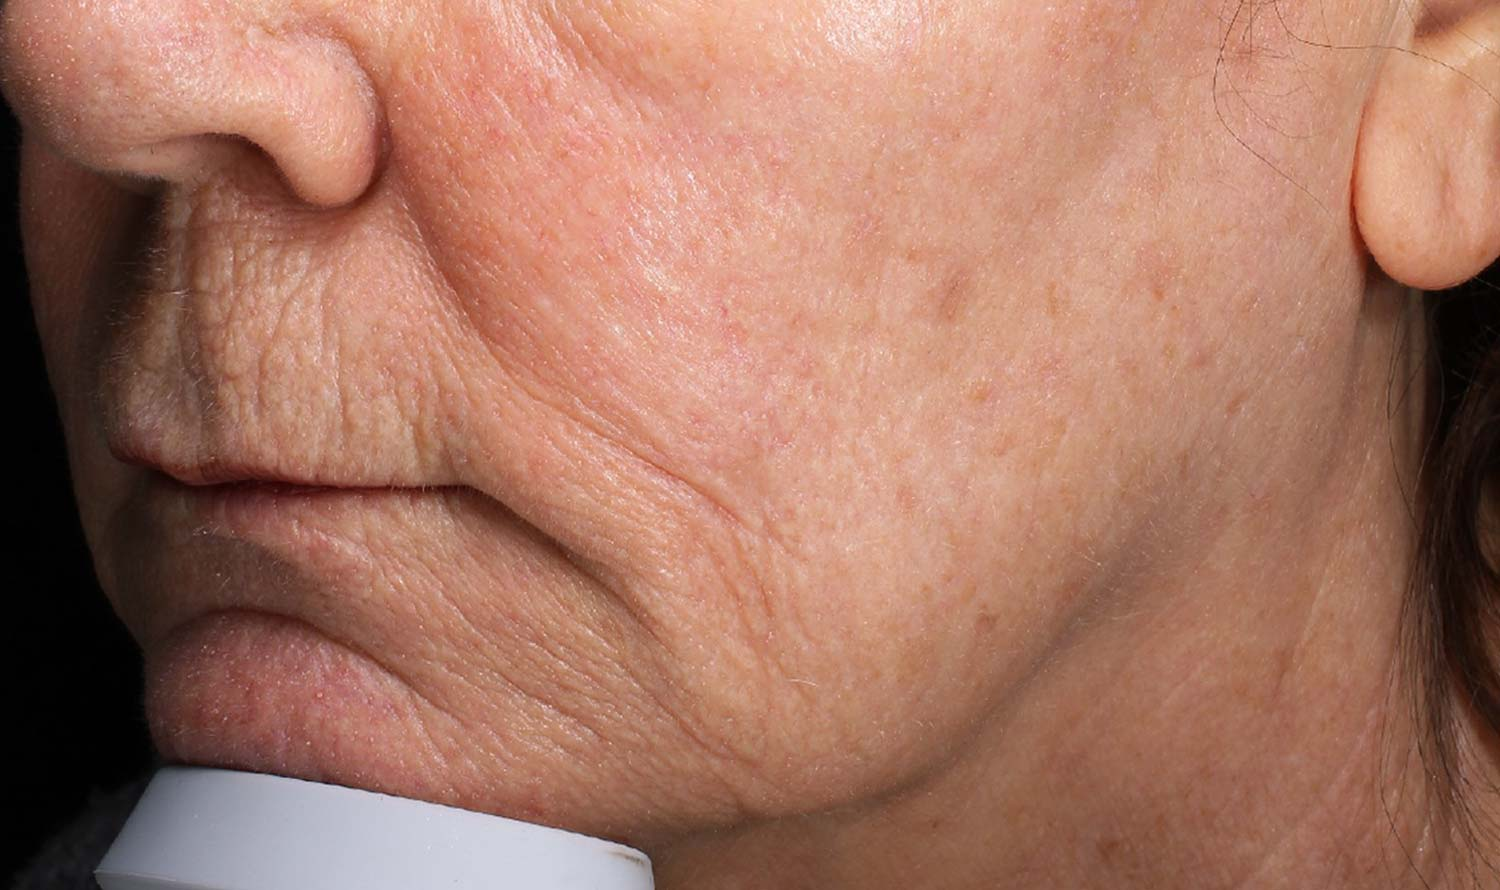 After filler injections of woman's tightened jowl.